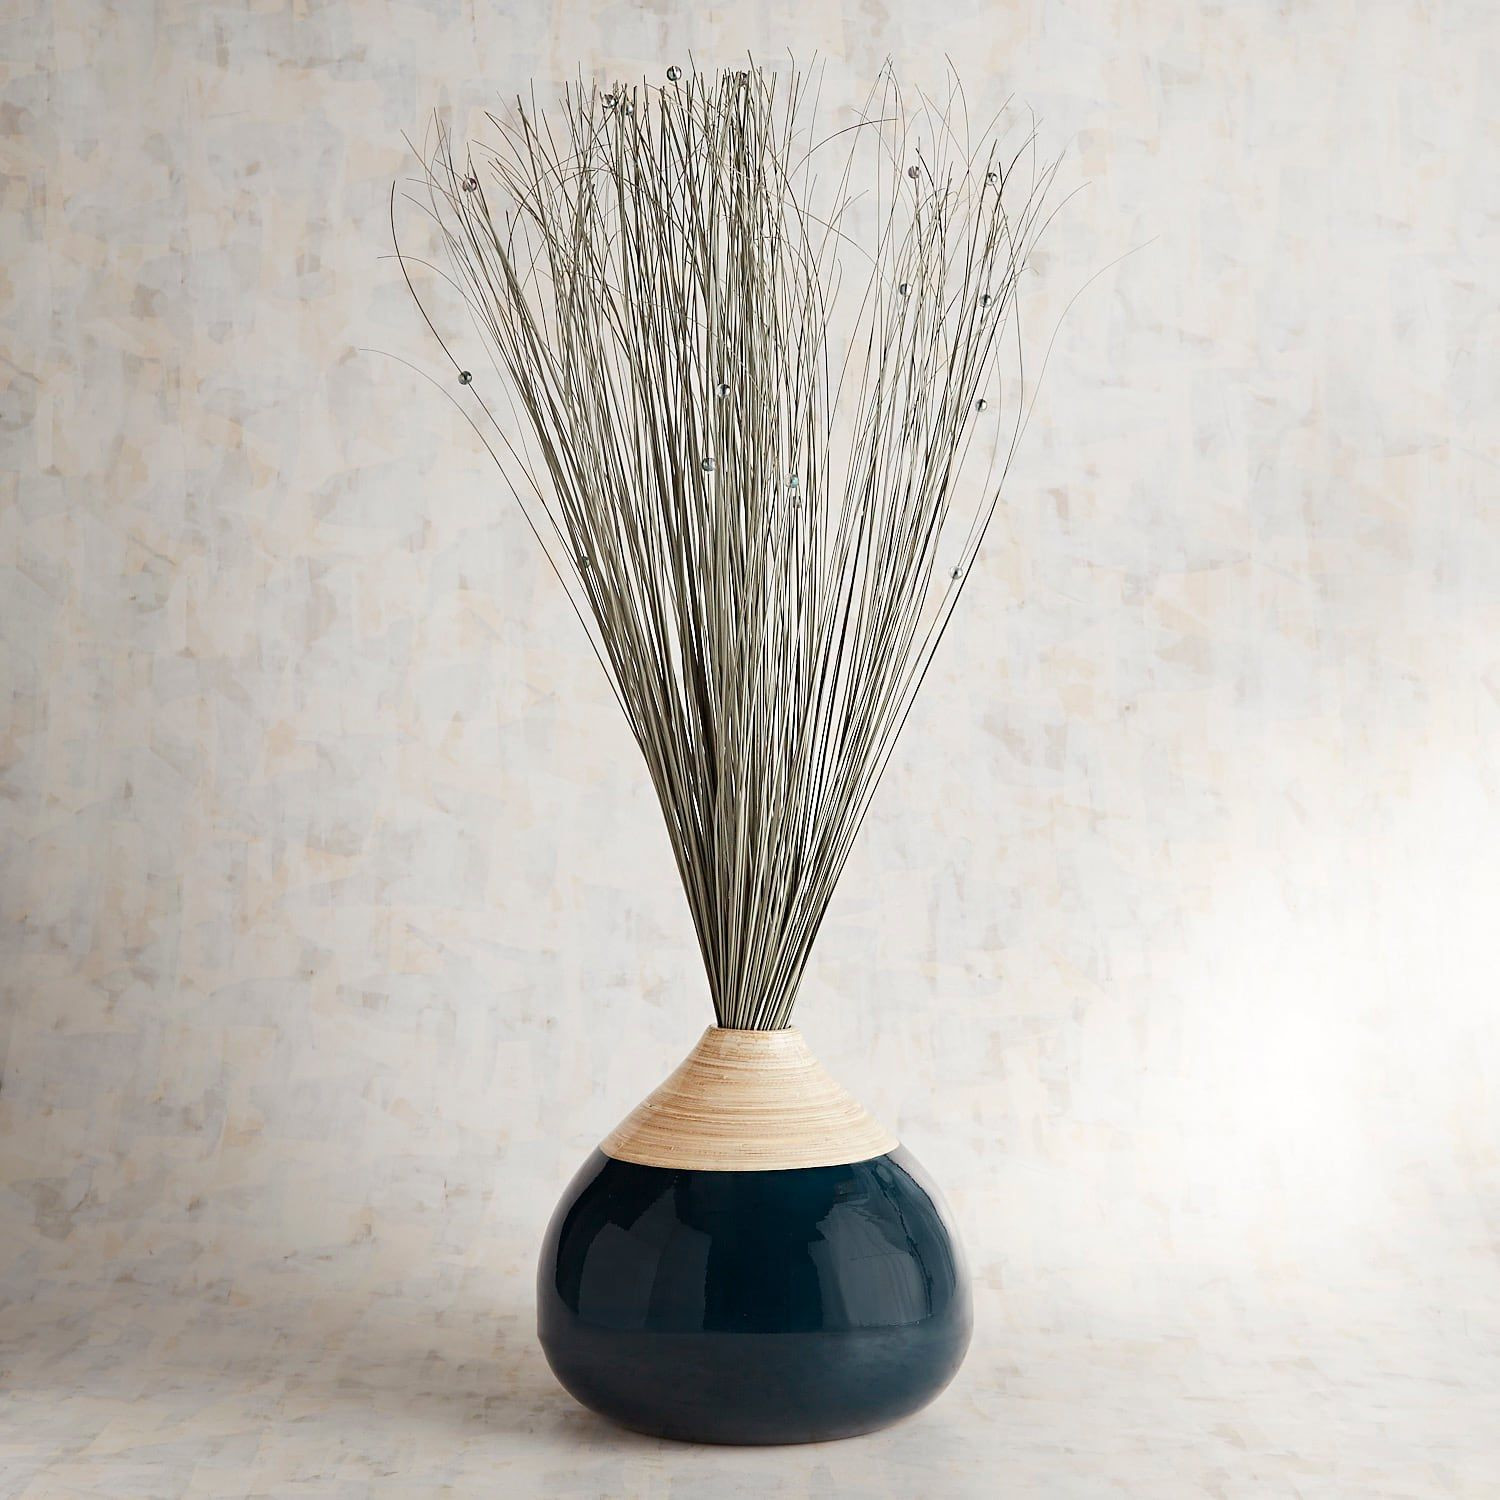 Waterford 7 Inch Vase Of Gray Navy Ting In Bamboo Vase Pinterest Navy Gray and Palm Throughout Gray Navy Ting In Bamboo Vase